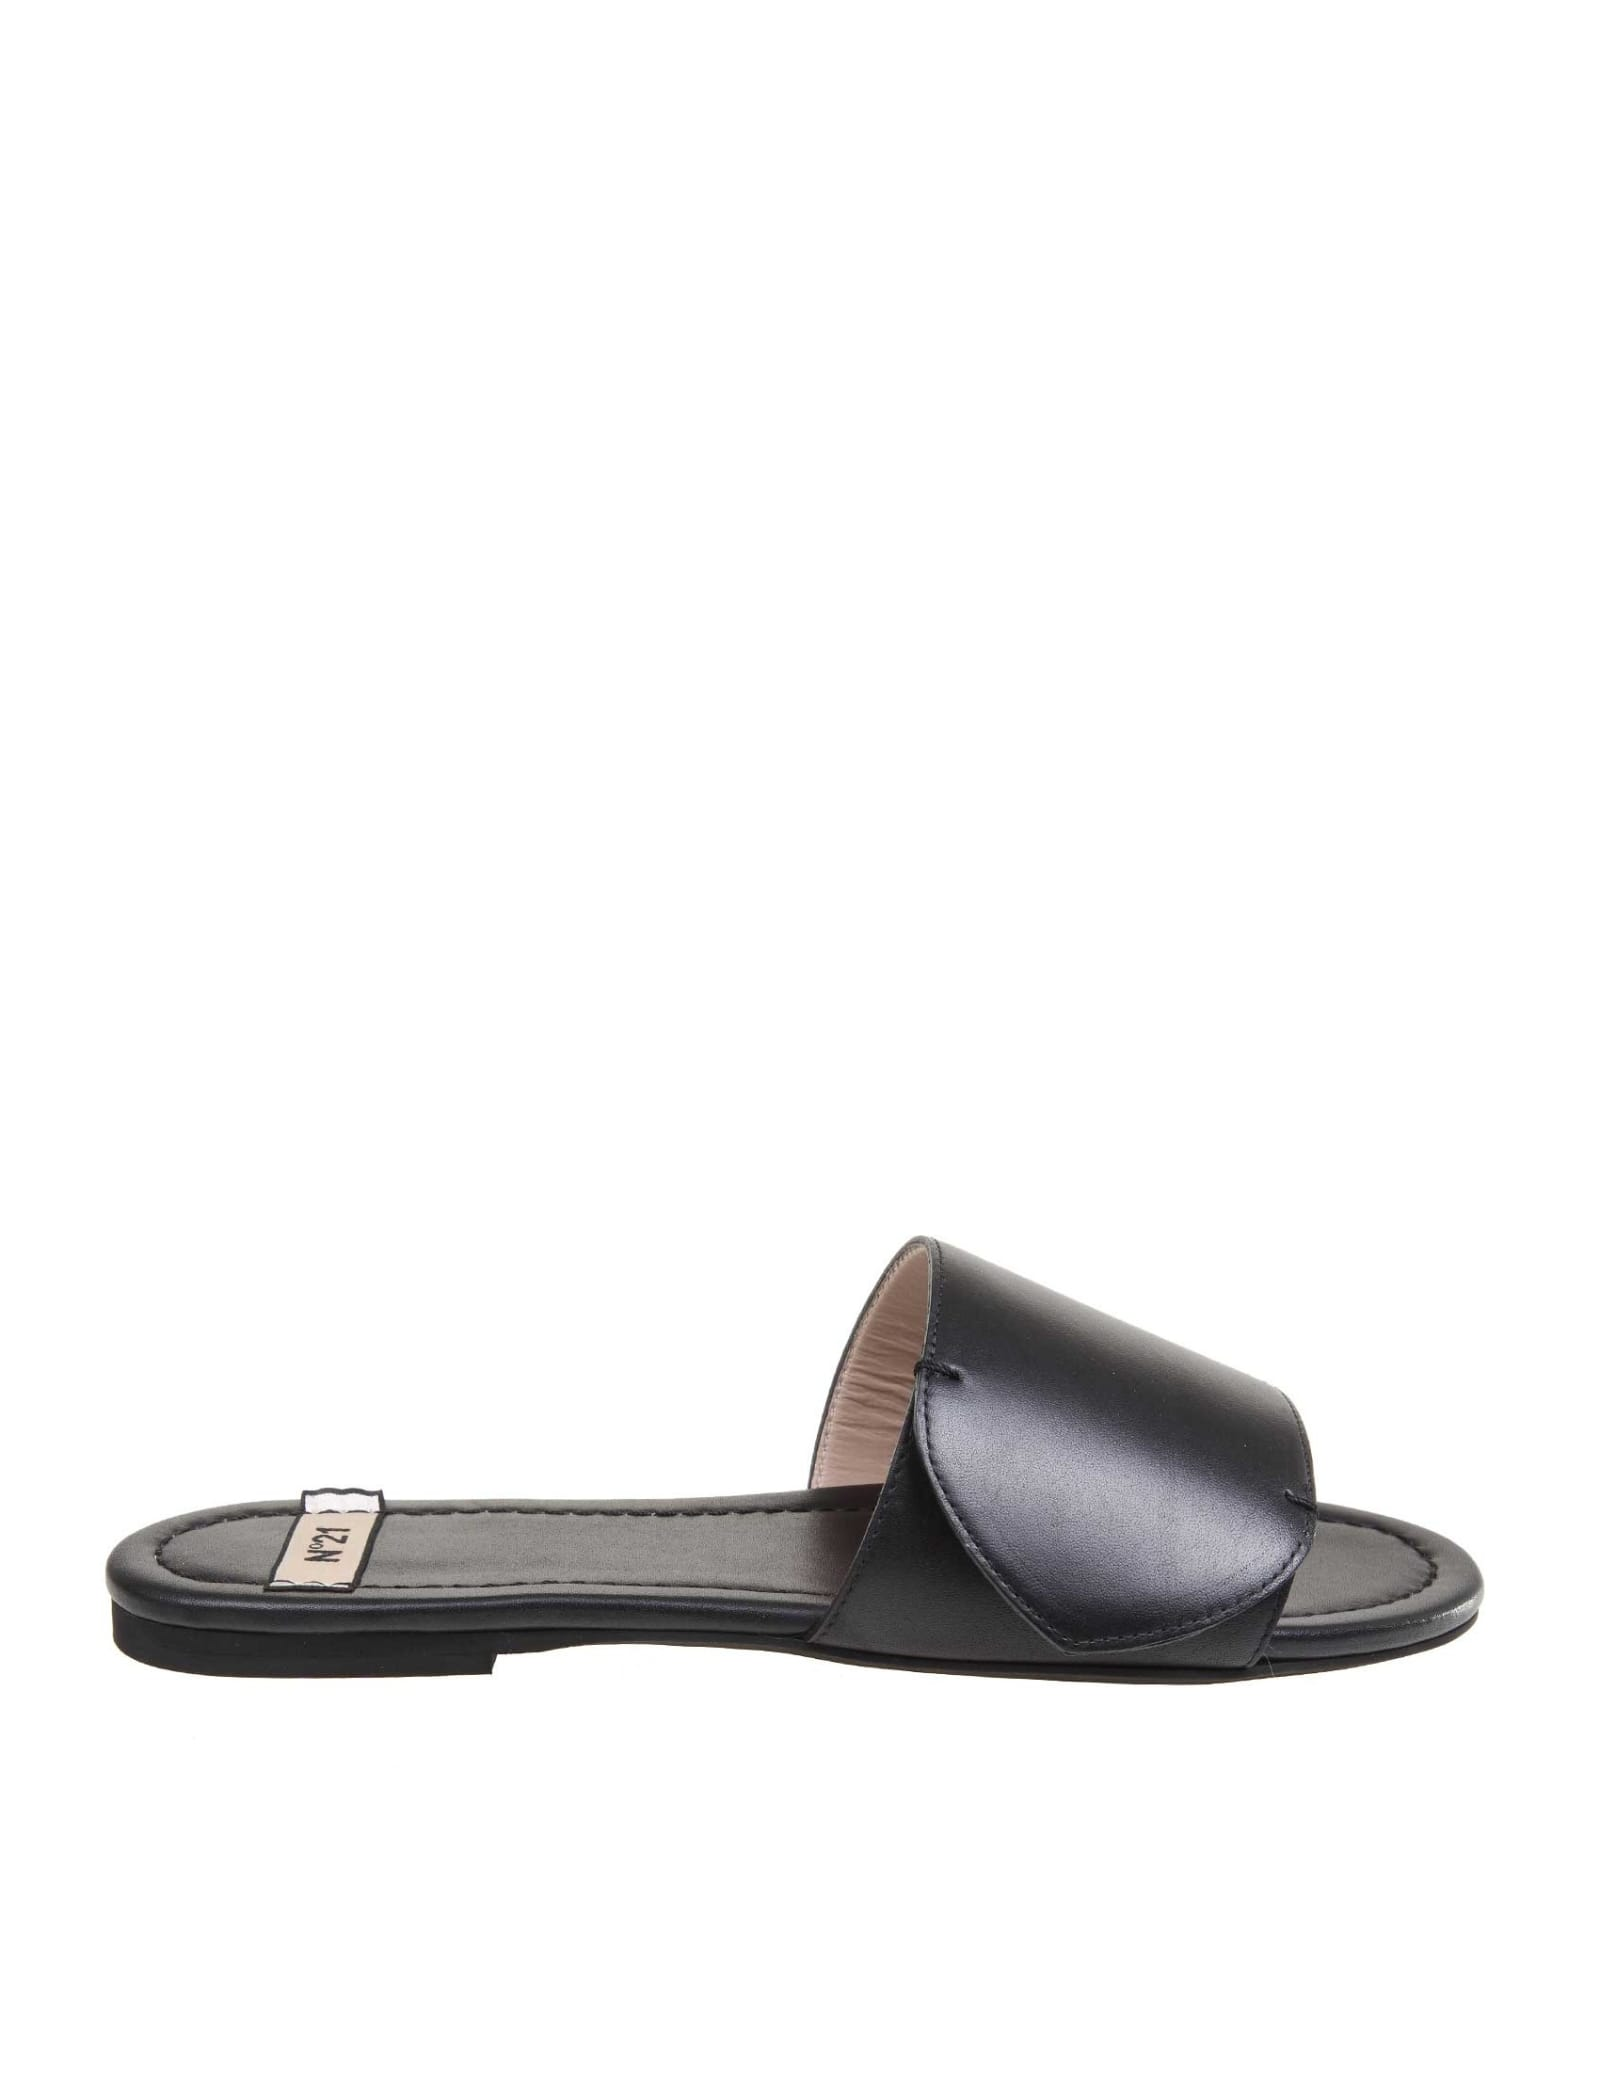 Calfskin sandal black colour model with open round tip golden metal logo leather interior flat heel rubber sole composition: upper: 100% calfskin; lining: 100% goat leather; sole: 100% rubber made in italy